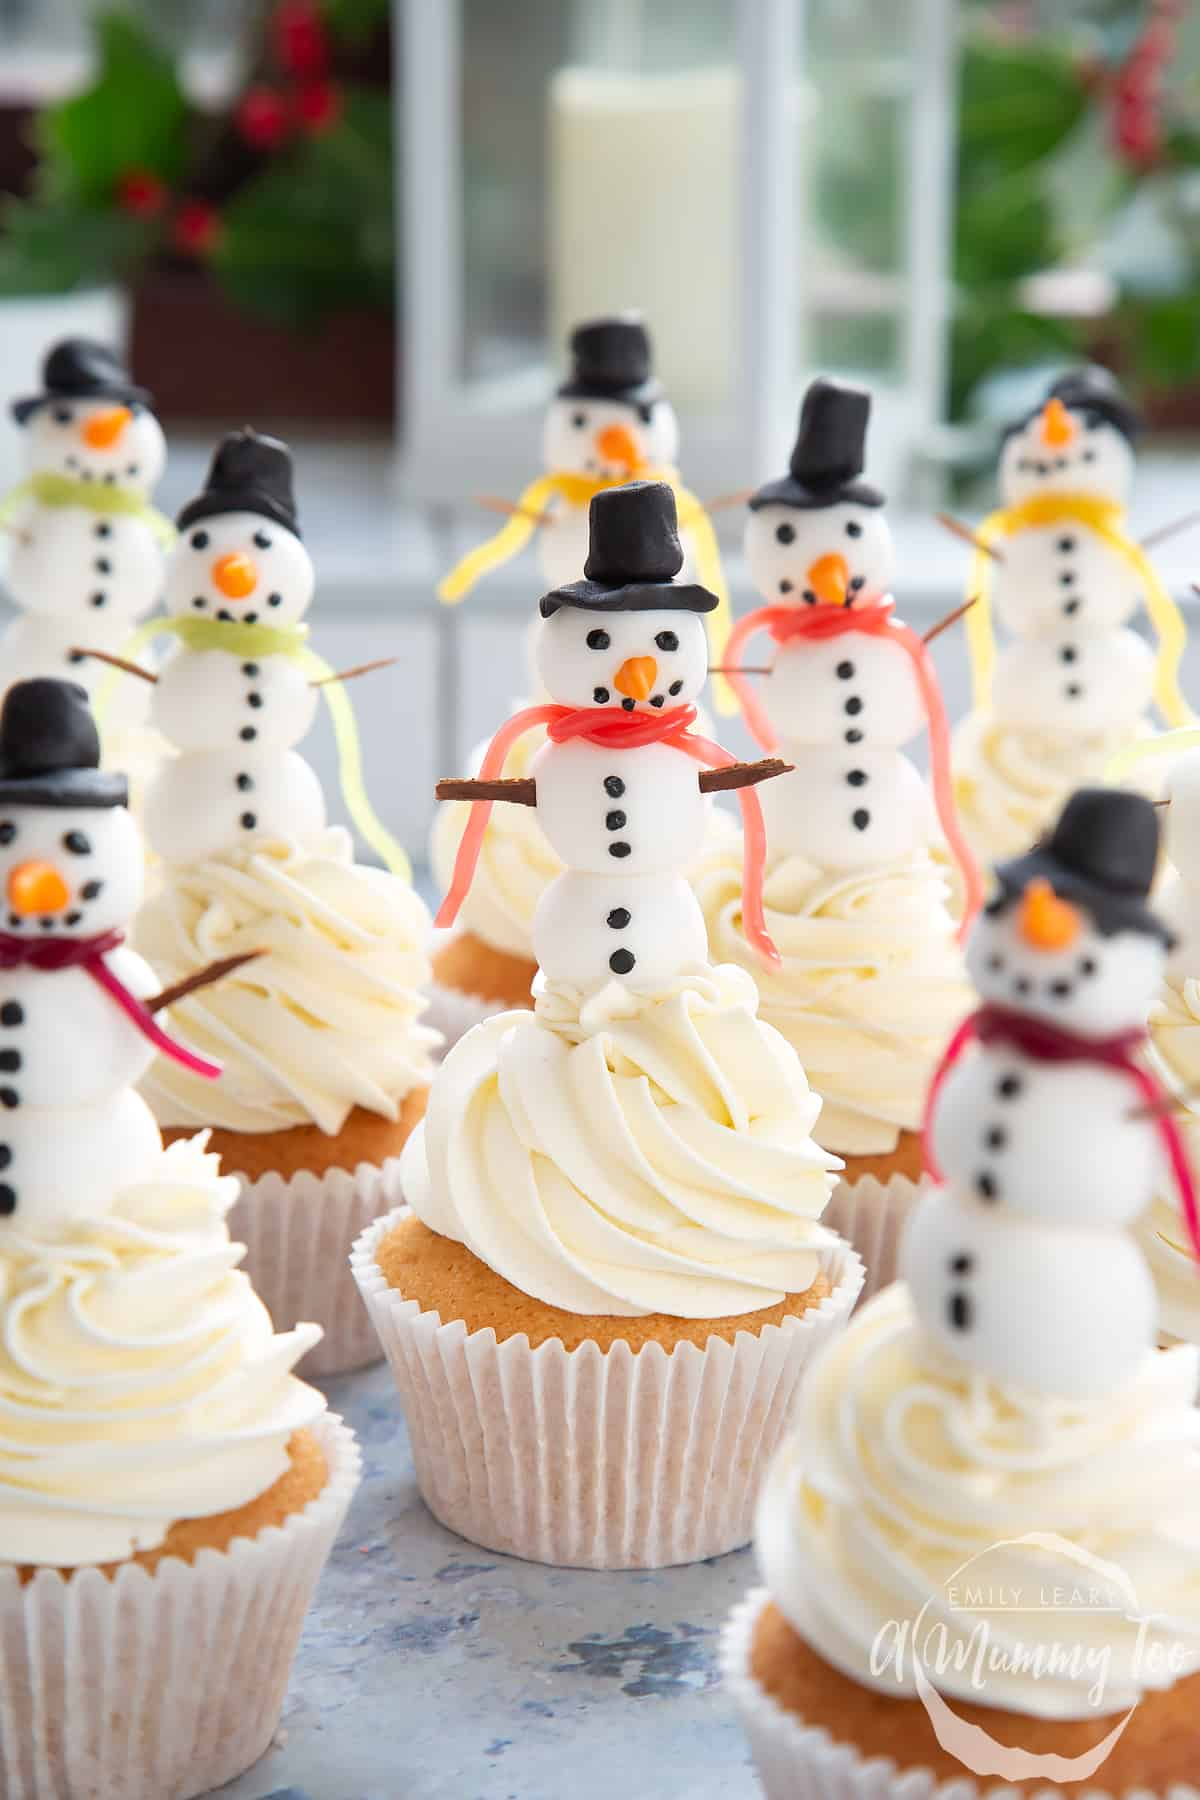 Multiple snowman cupcakes sat on a table with festive decorations in the background.